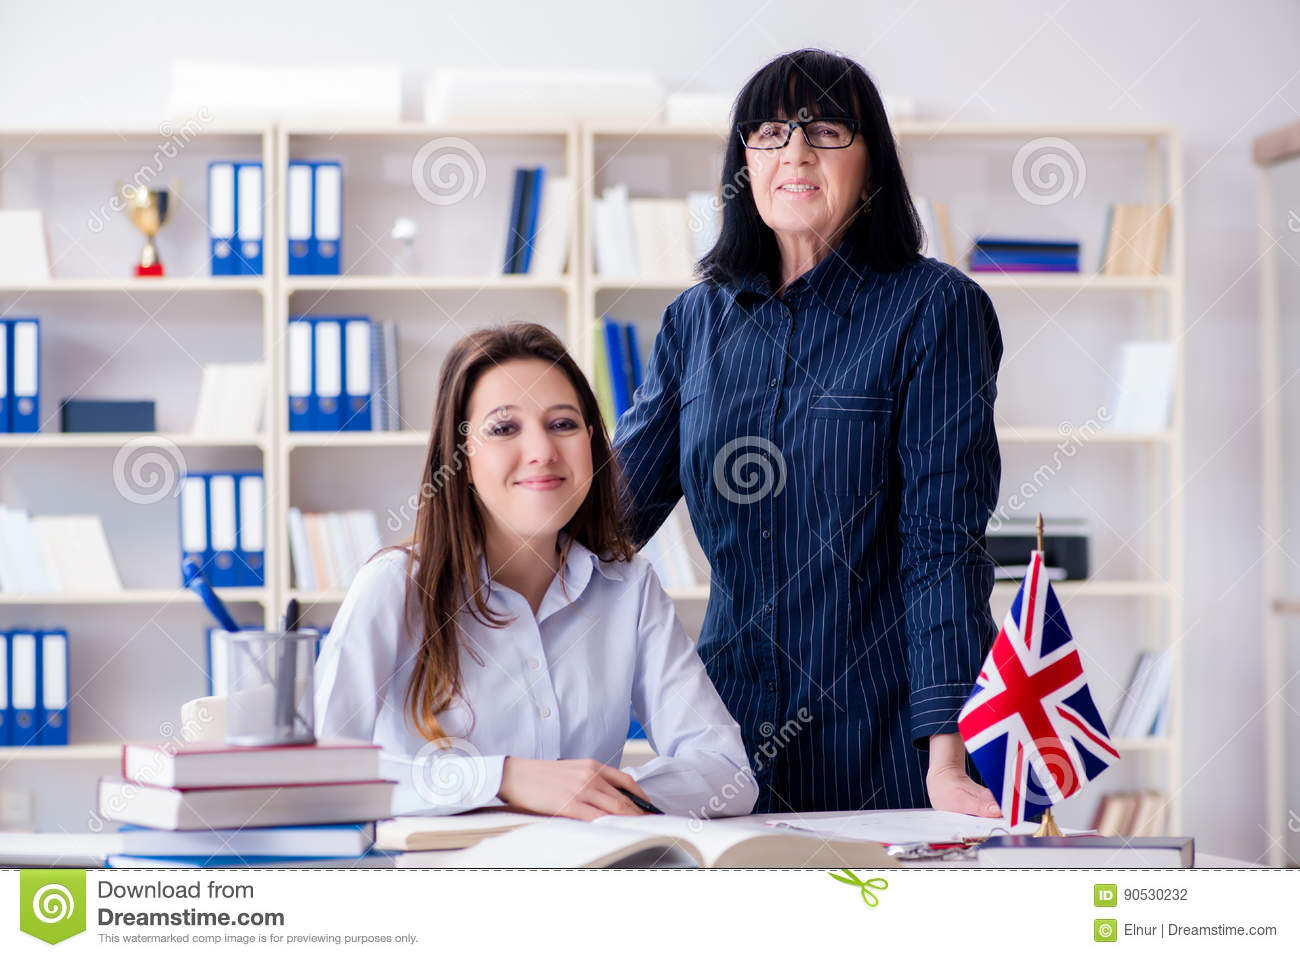 international students in english speaking universities Many hungarian universities offer english-language courses within student  exchange frameworks like  hungarian universities are very popular among  international students: they offer quality education for  english-speaking  universities.